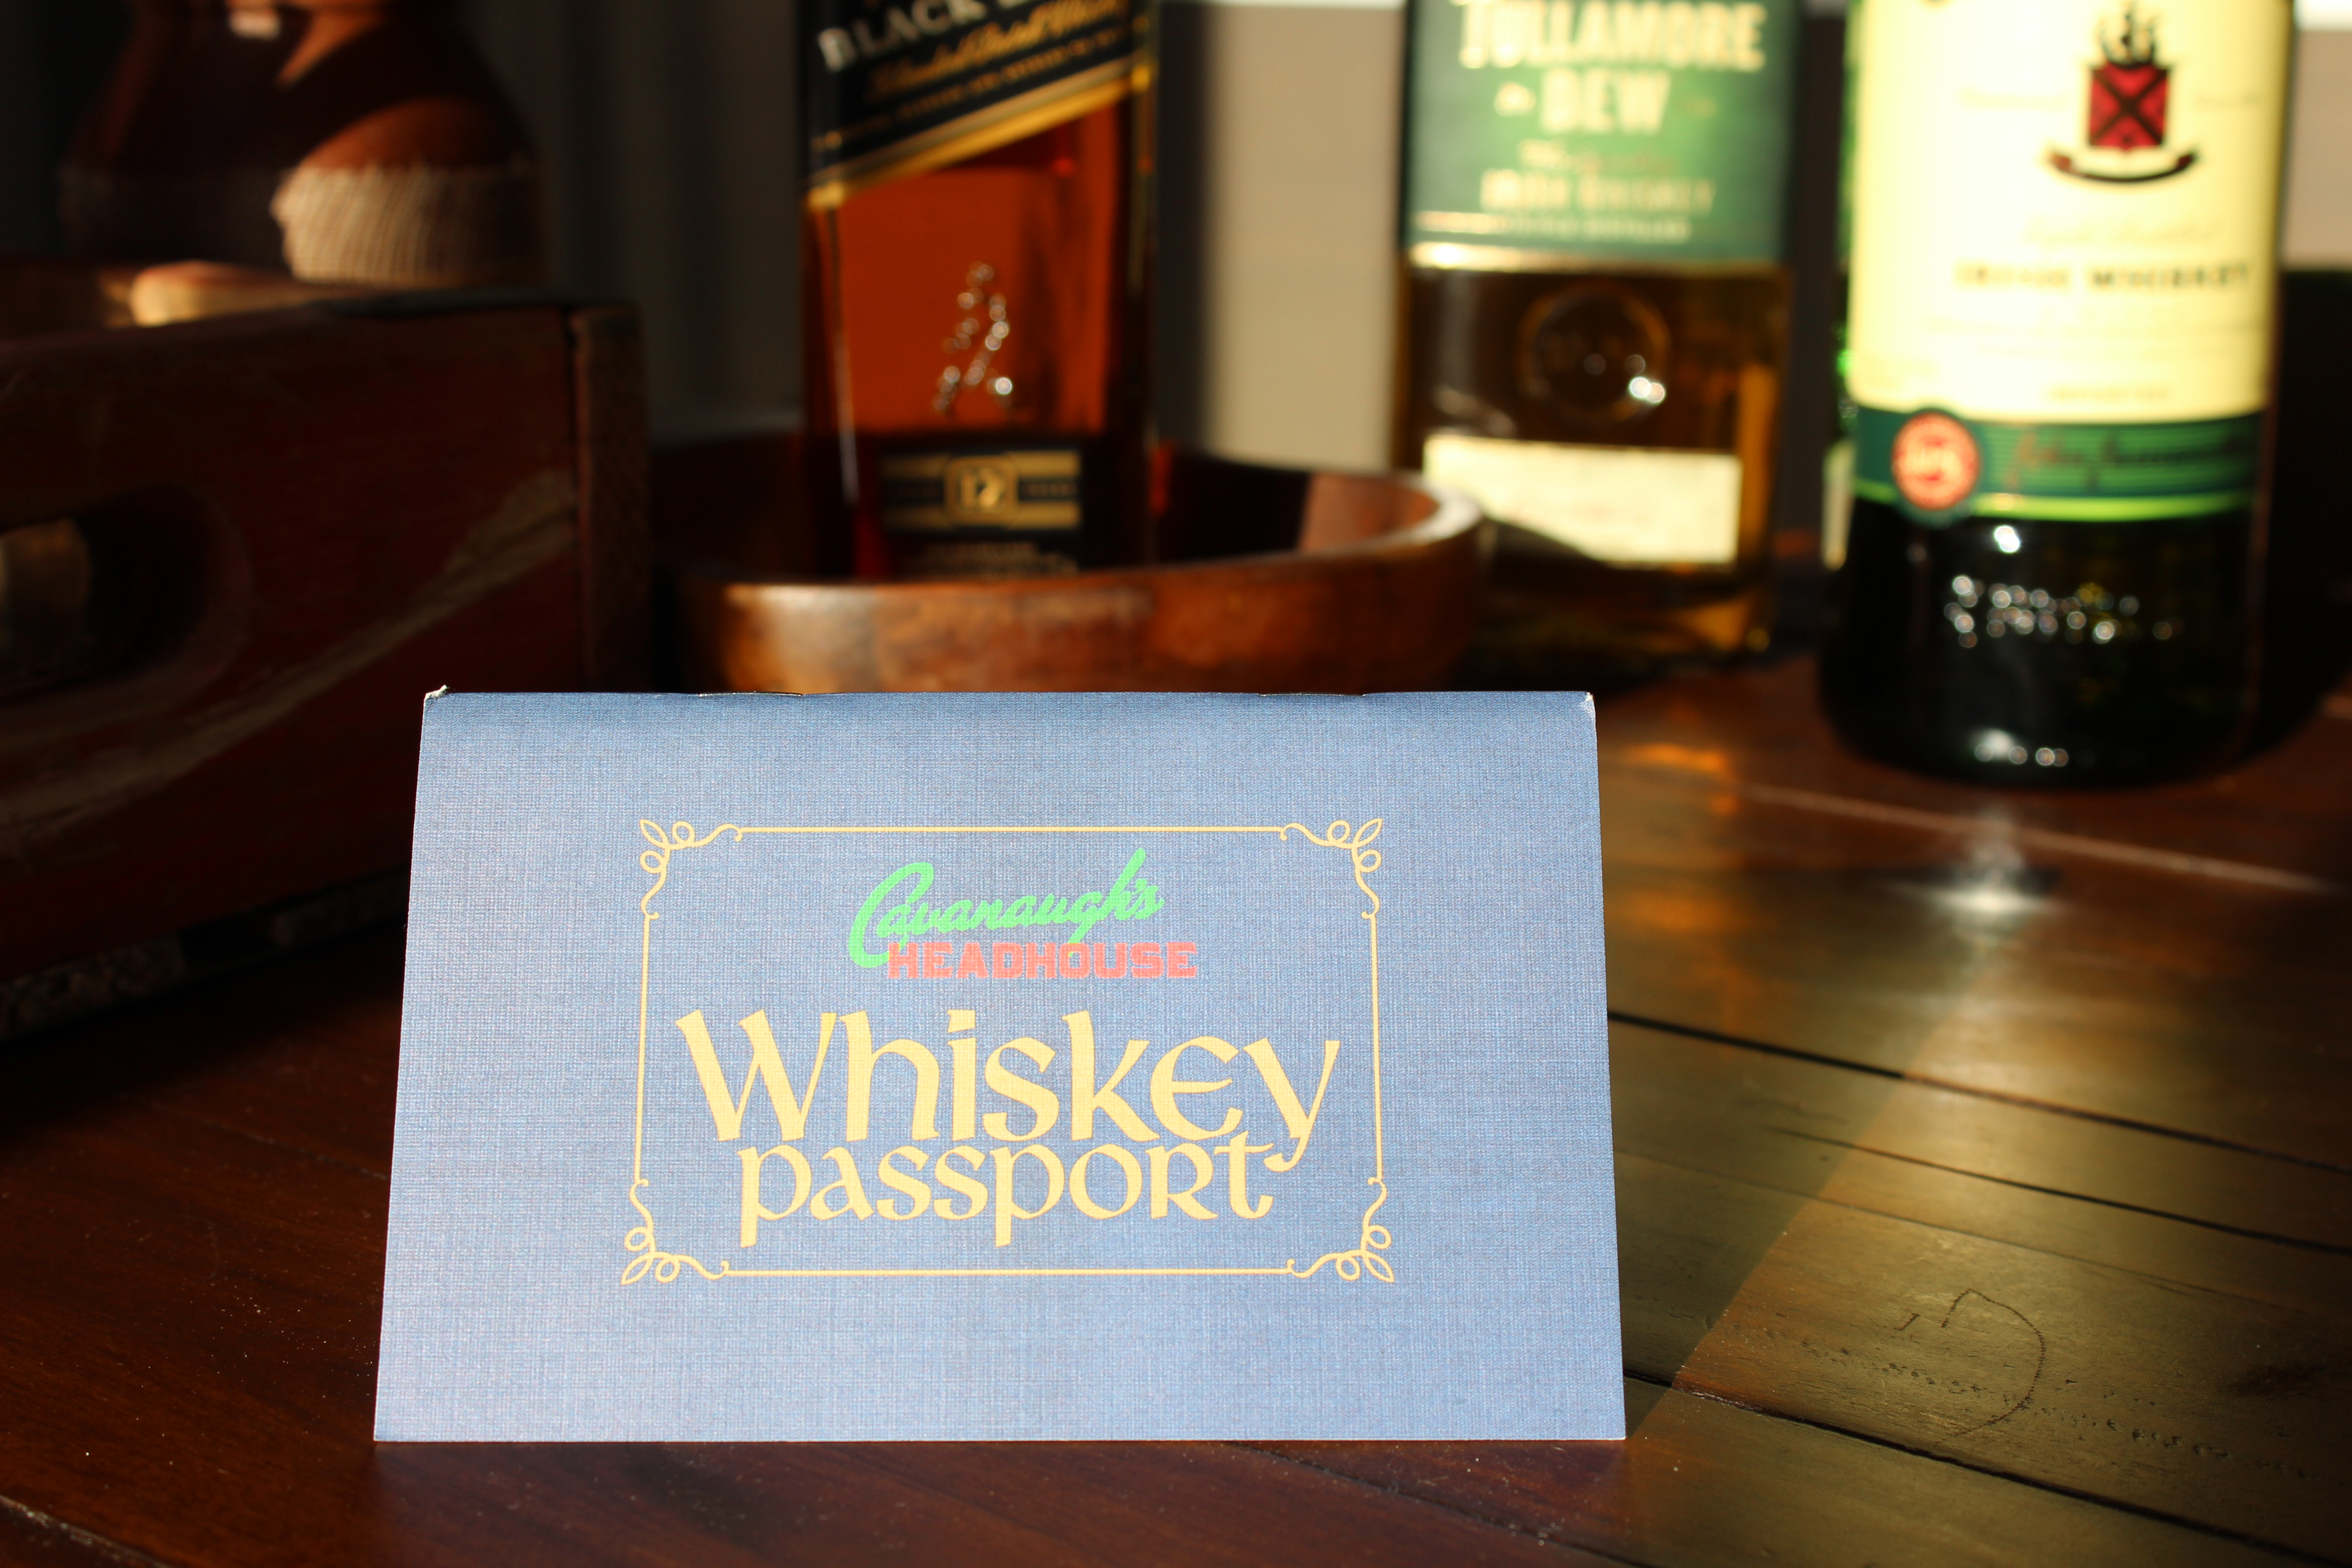 Whiskey Passport Cavs Headhouse Social Media Philadelphia graphic design